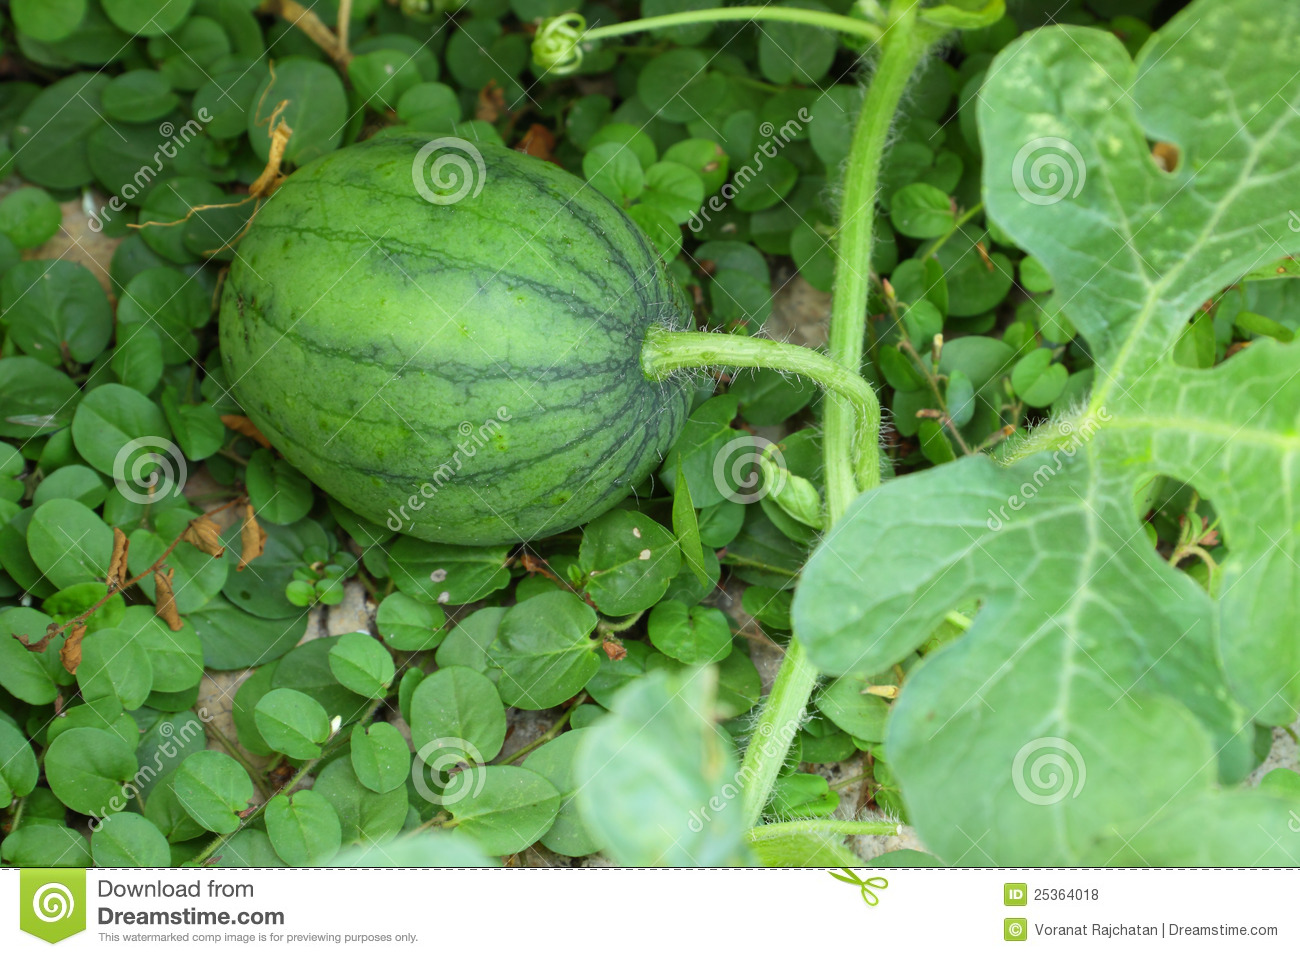 Cultivation a watermelon stock photo. Image of diet ...